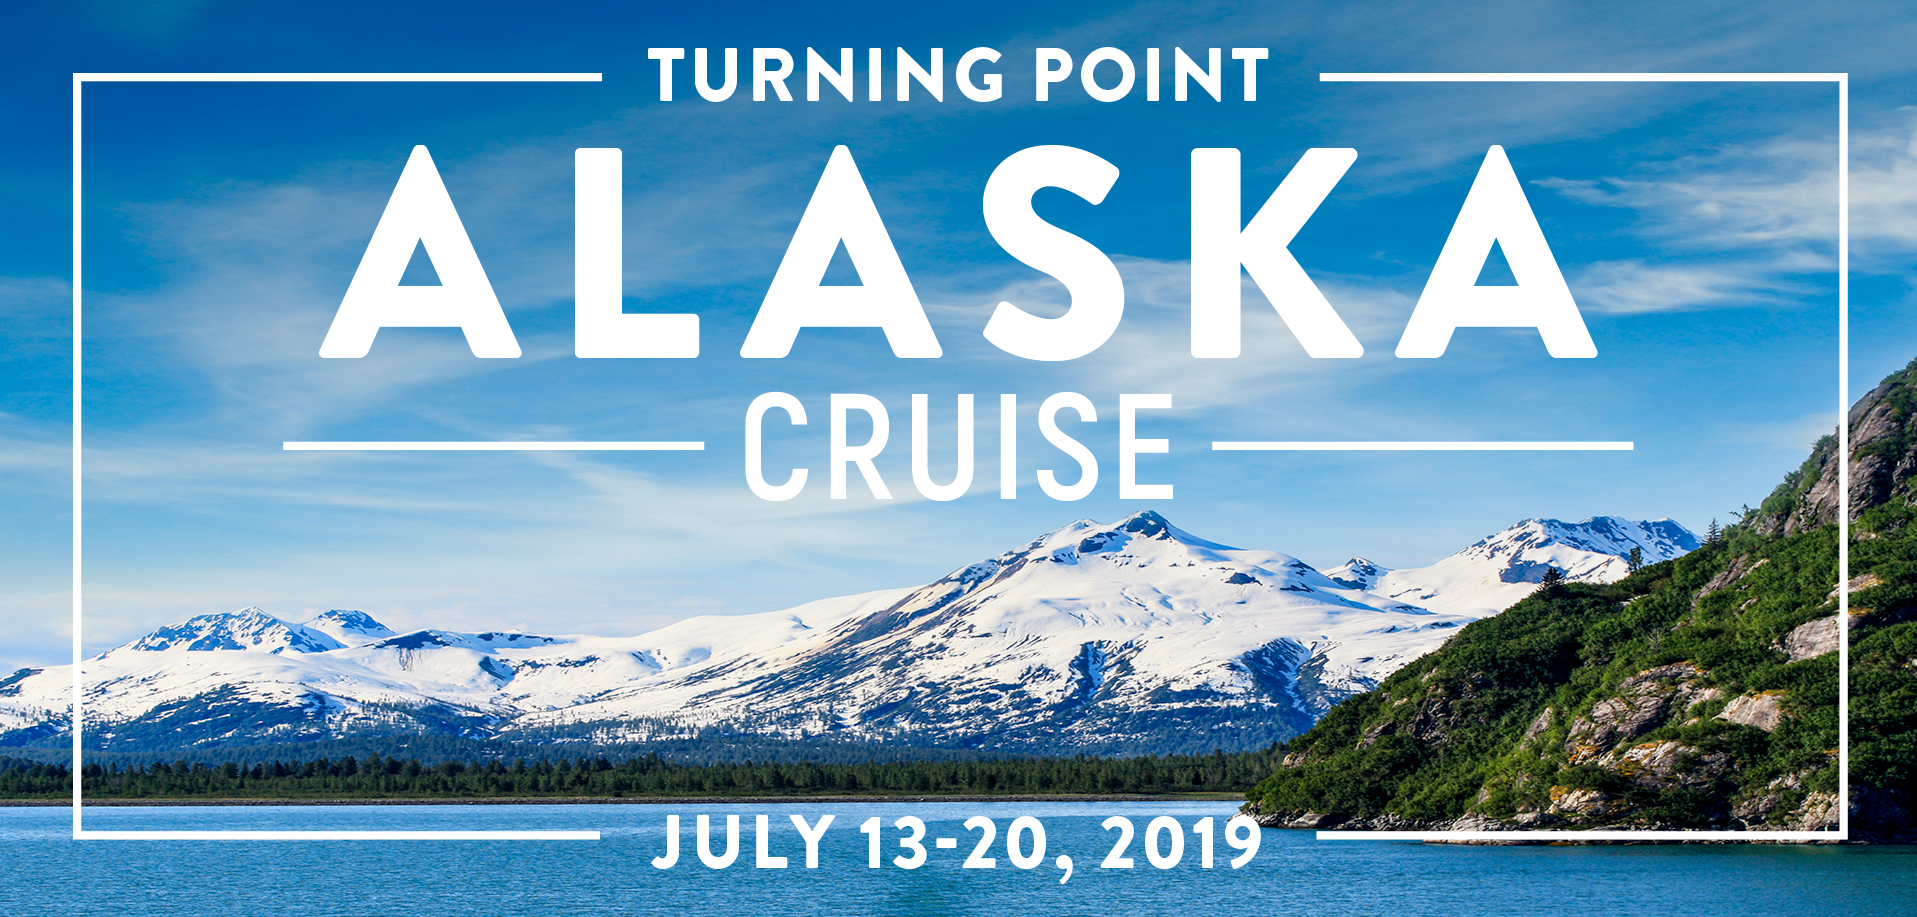 Take a Christian Cruise with Turning Point Ministries - Alaskan Cruise - July 13-20, 2019